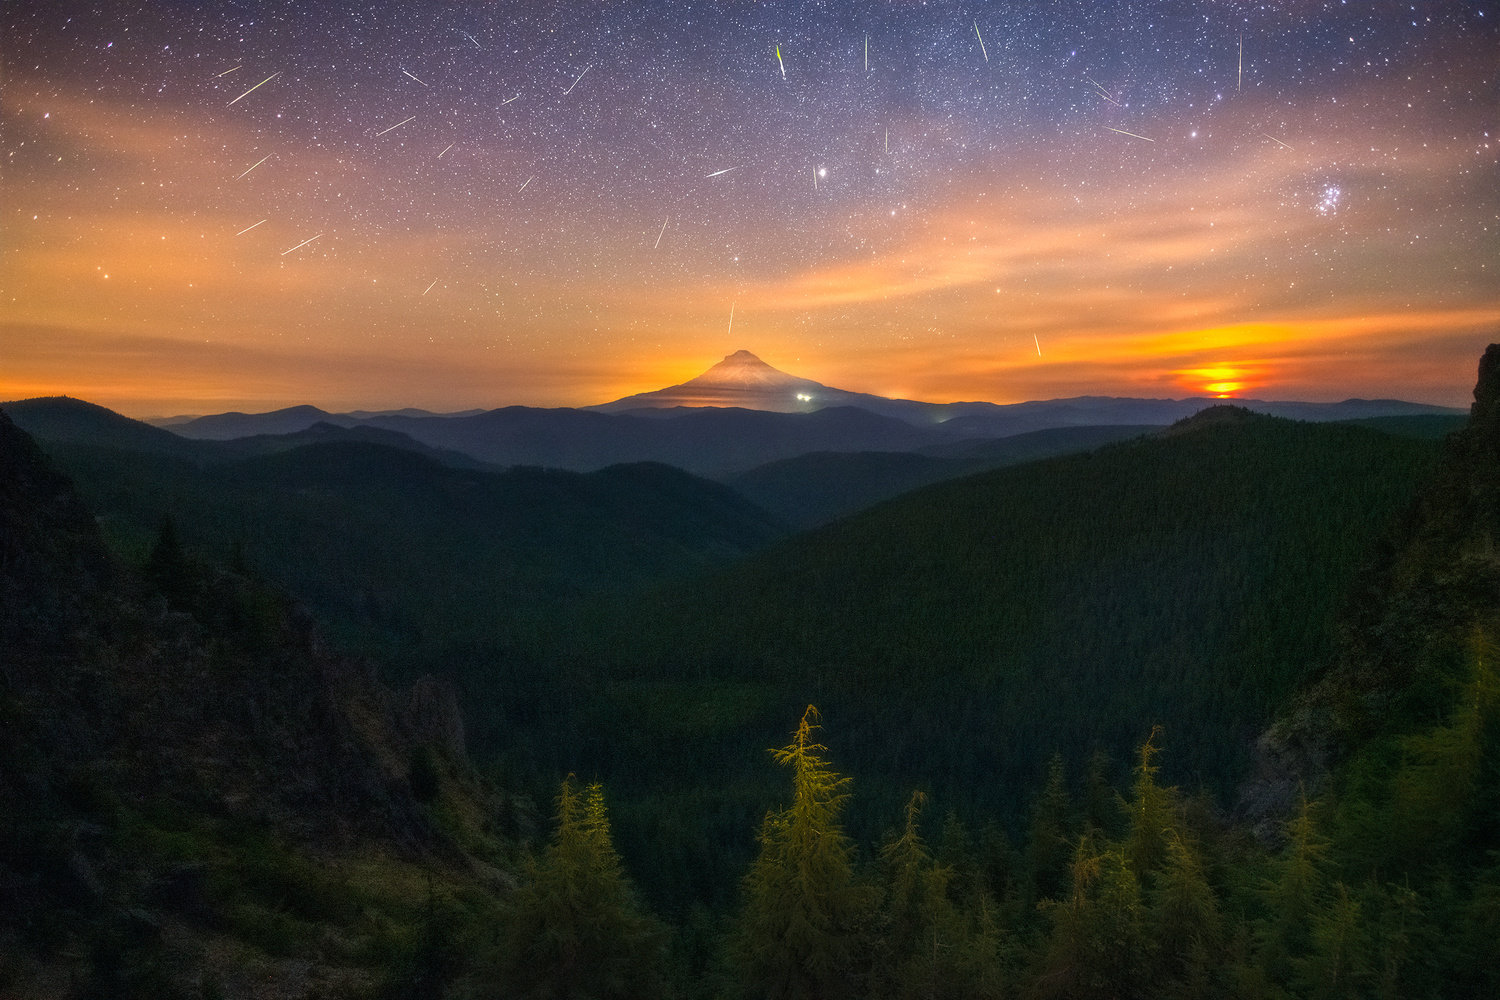 Perseid Meteor Shower over Mt. Hood by Daniel Gomez